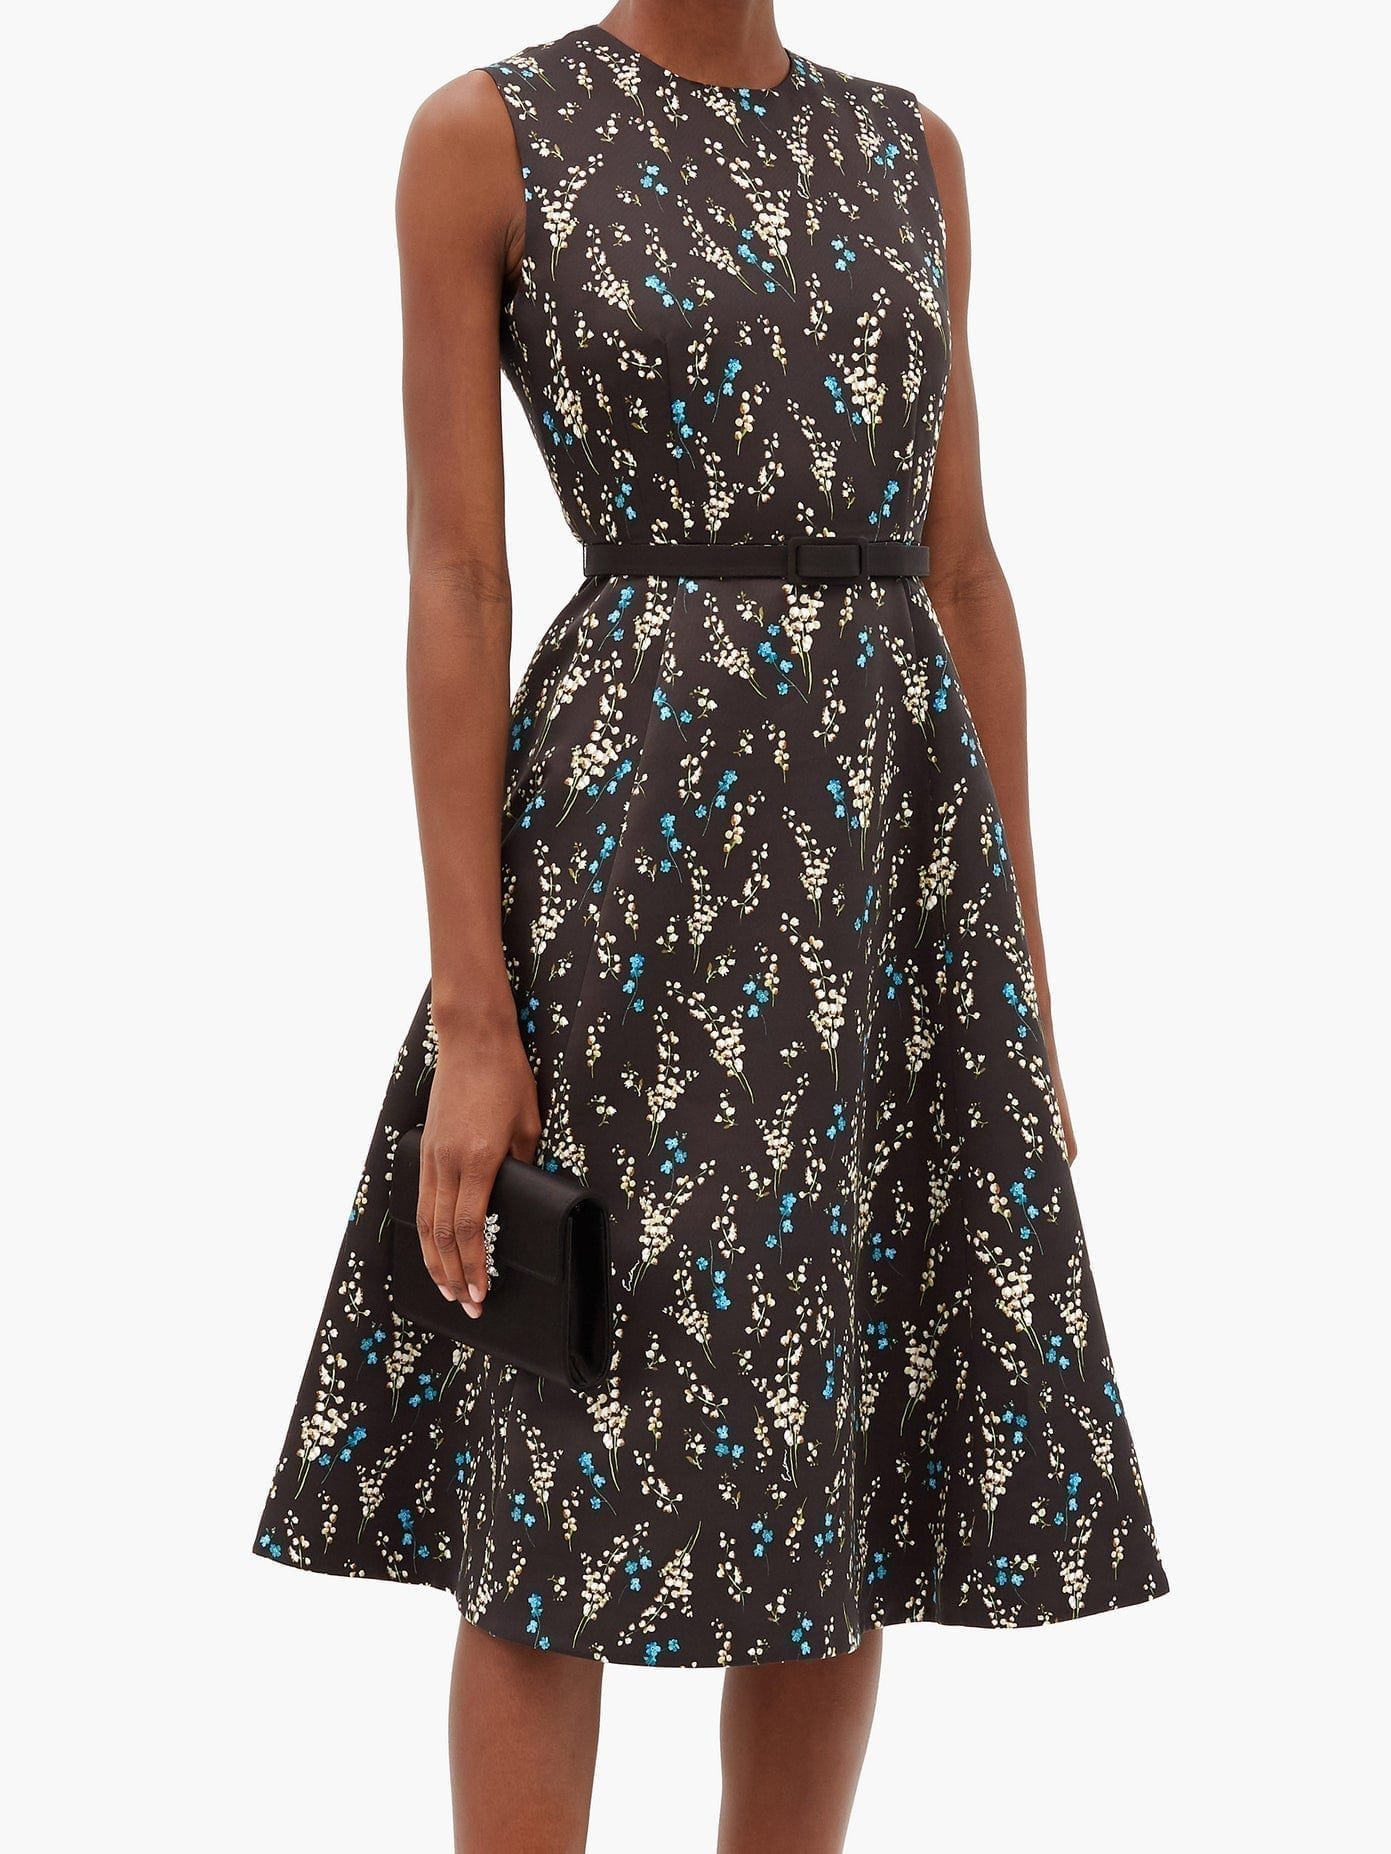 ERDEM Farrah Printed Twill Dress